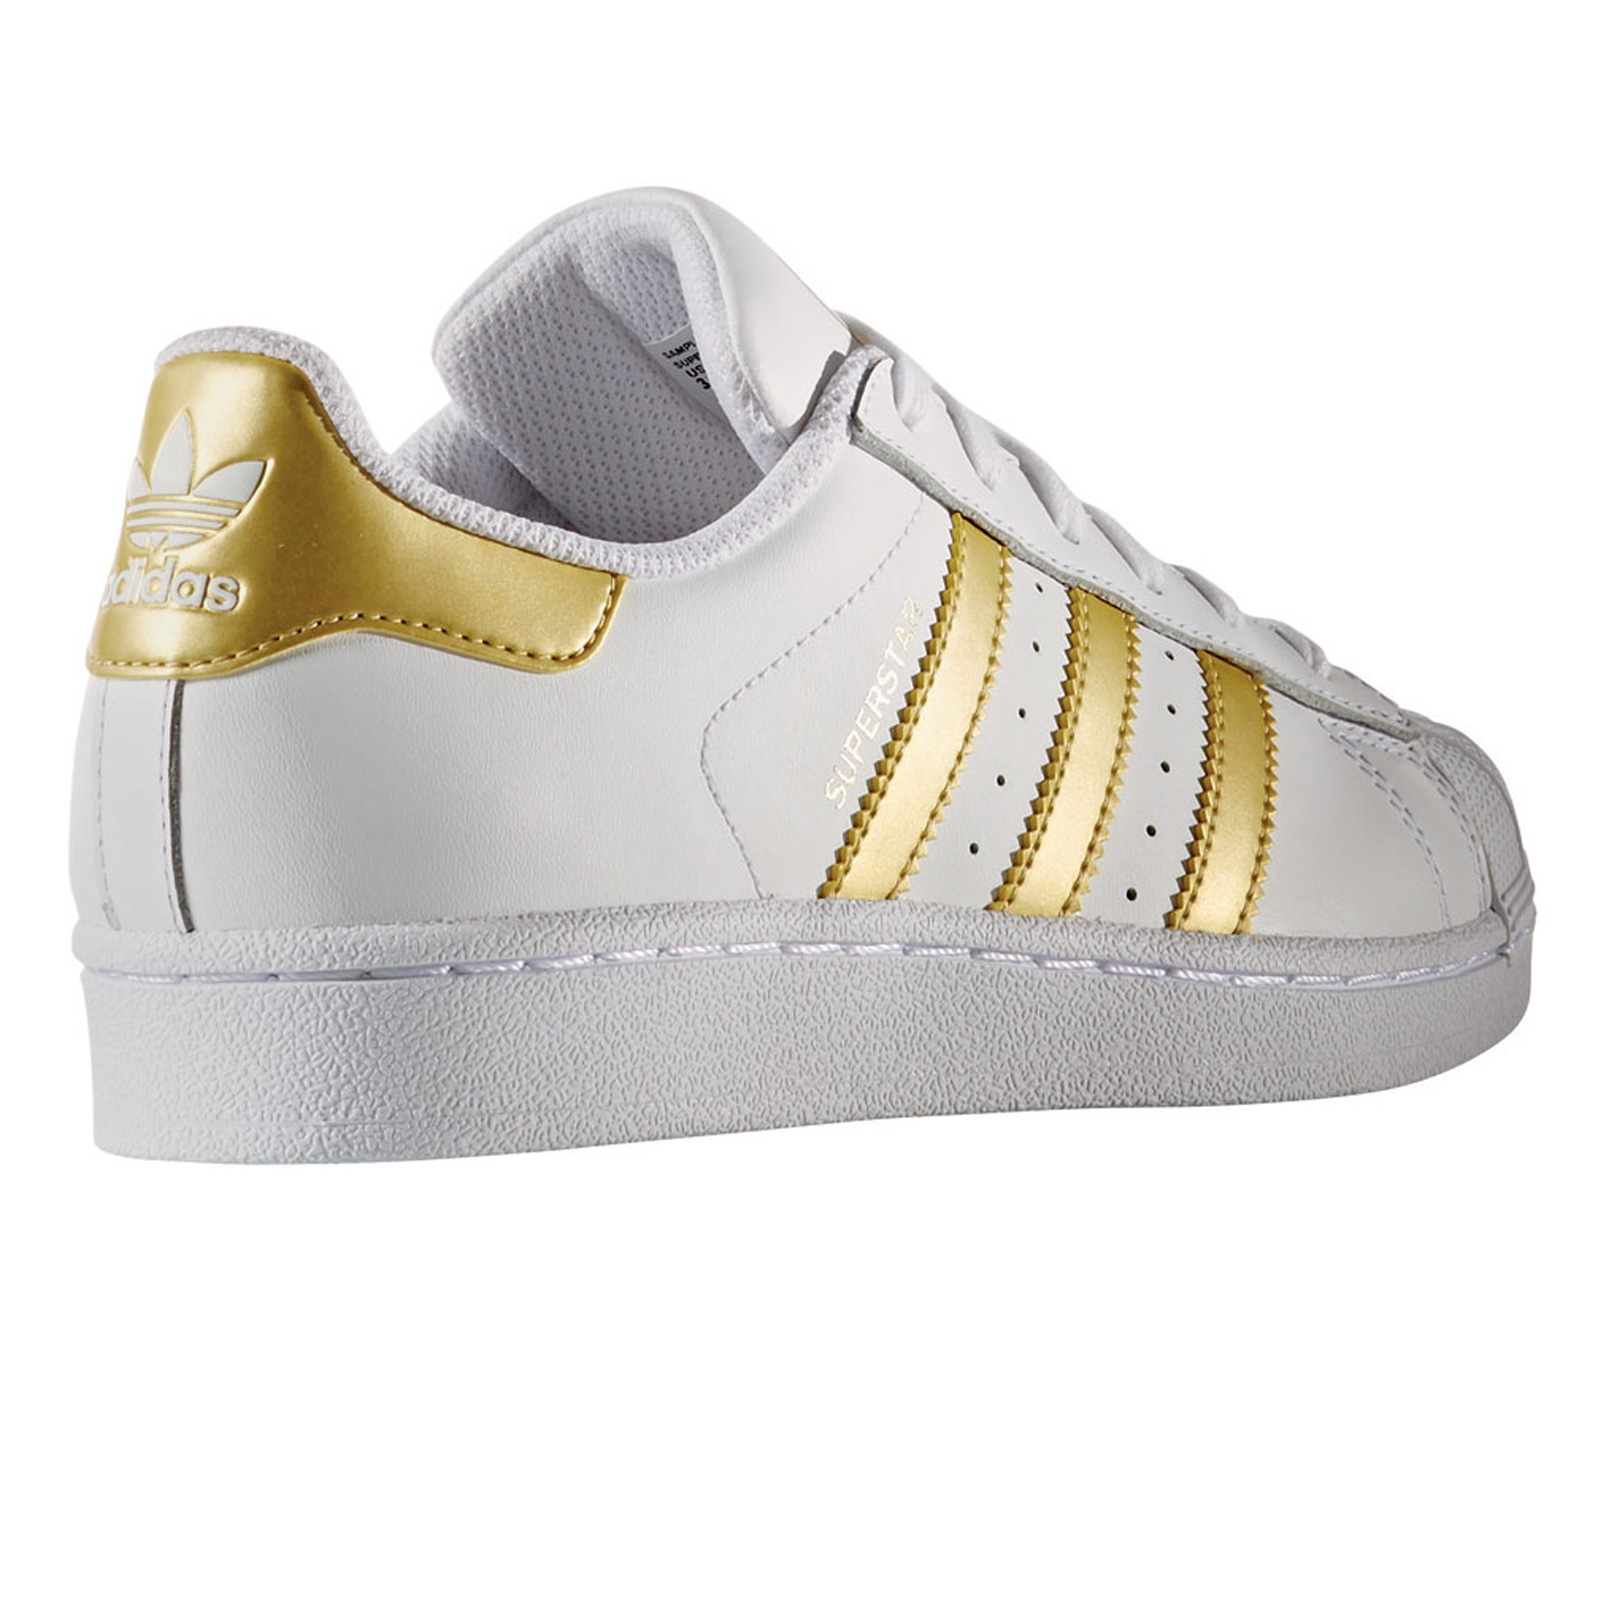 adidas Originals Superstar Damen Sneaker Weiß